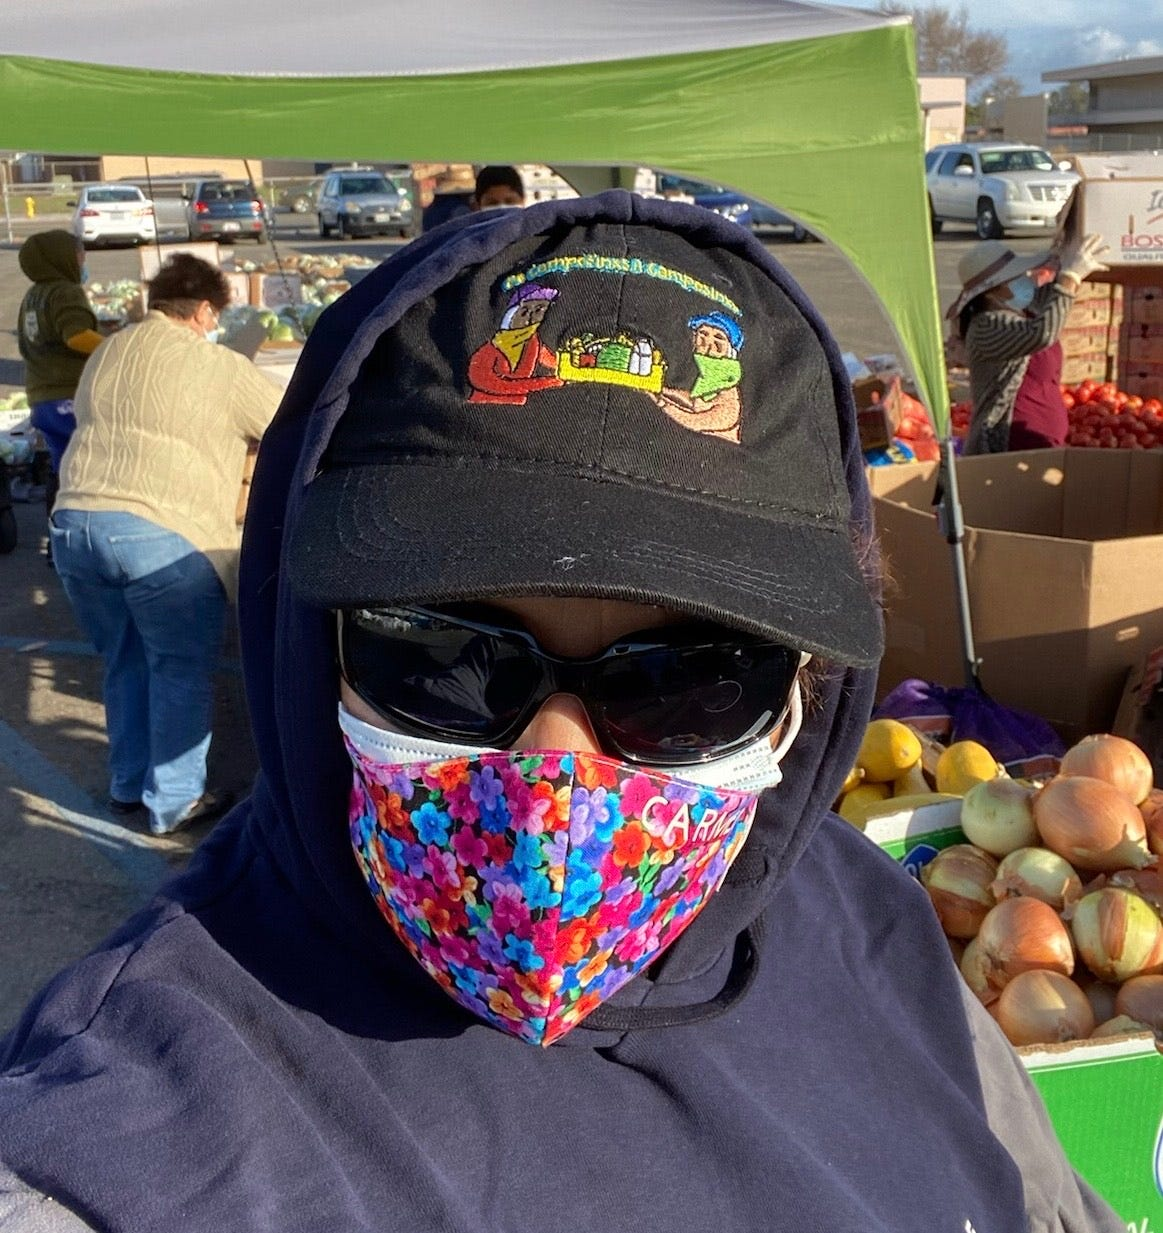 Farmworker Carmen Obeso helps lead a volunteer group that provides food and other goods for farmworkers.